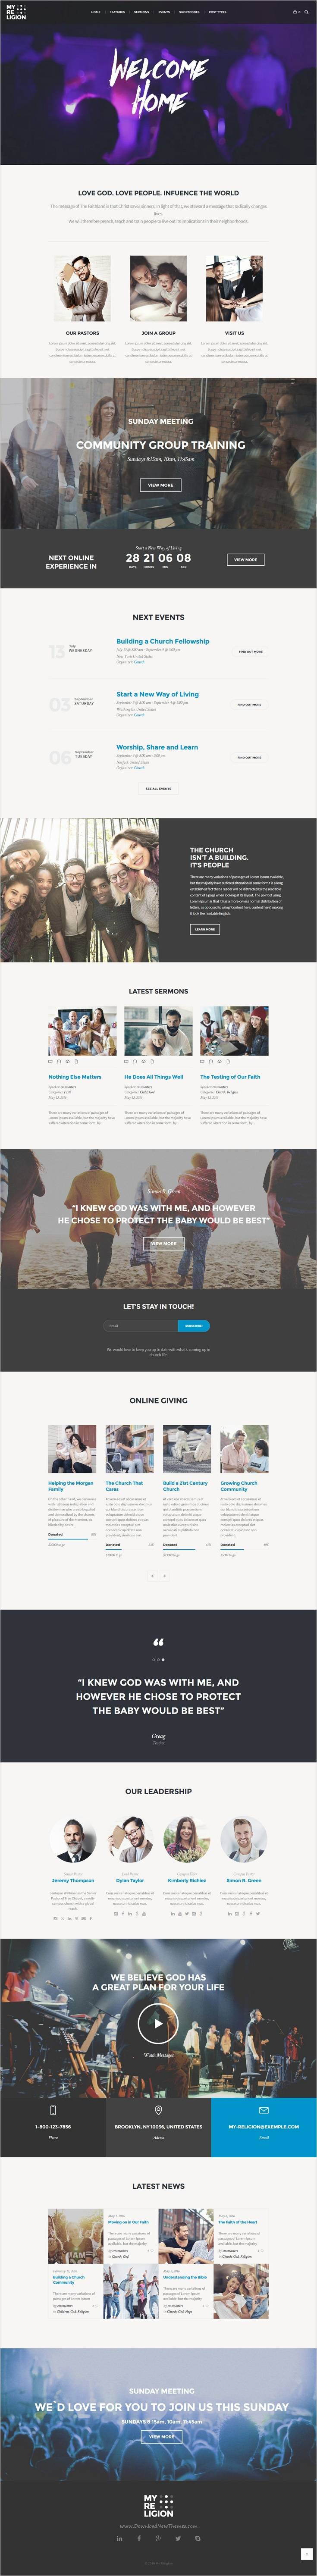 WordPress Template For Churches